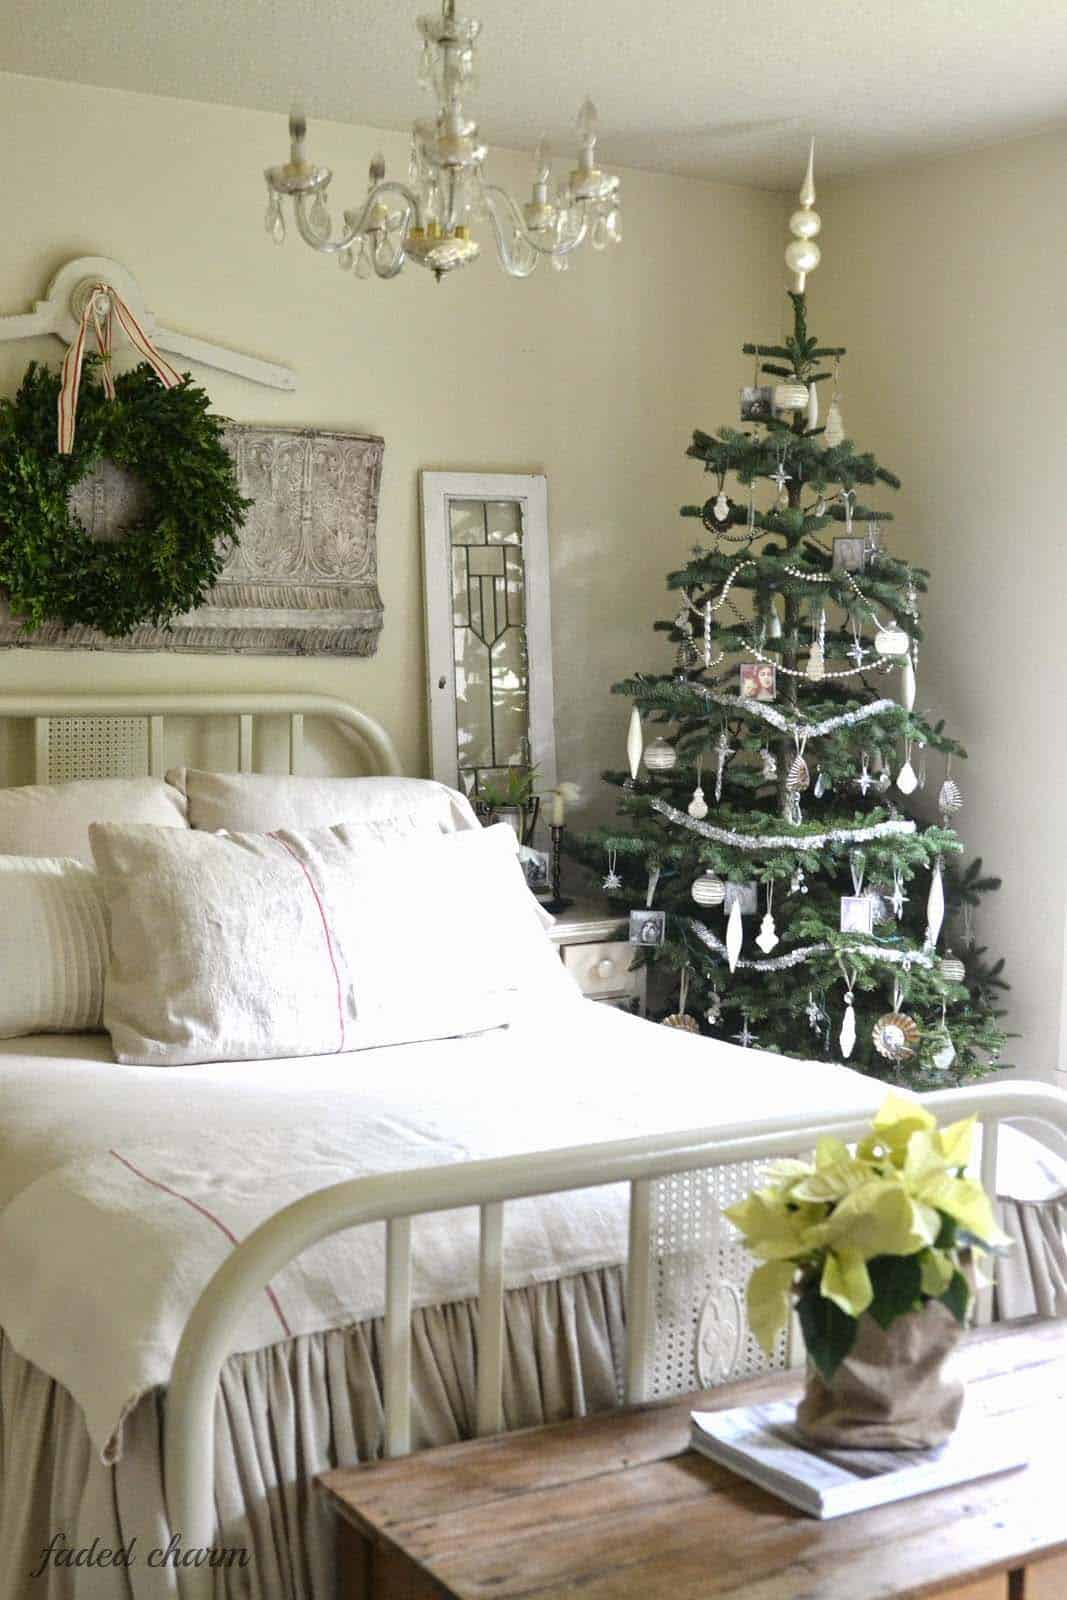 Christmas Bedroom Decorating Ideas-08-1 Kindesign